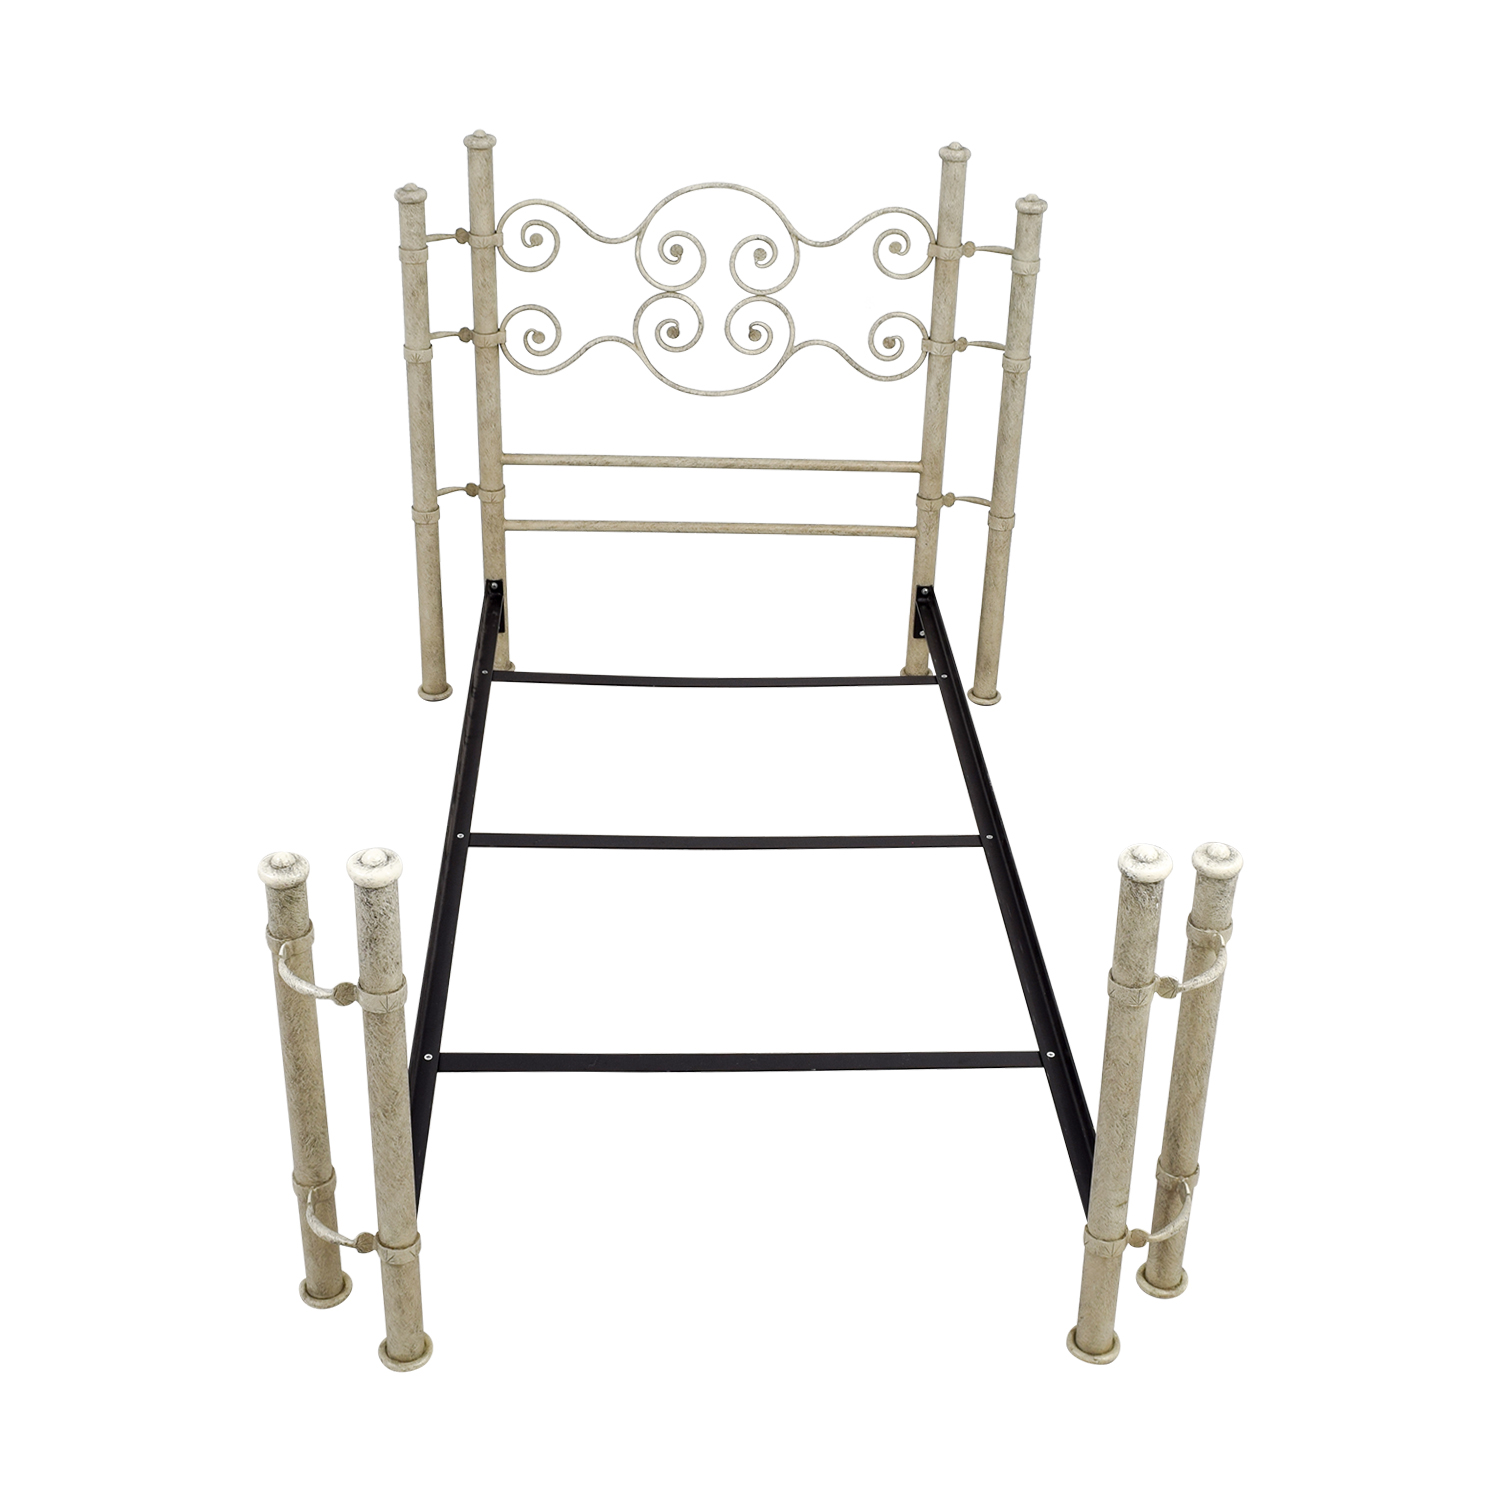 shop Distressed White and Metal Twin Bed Frame online